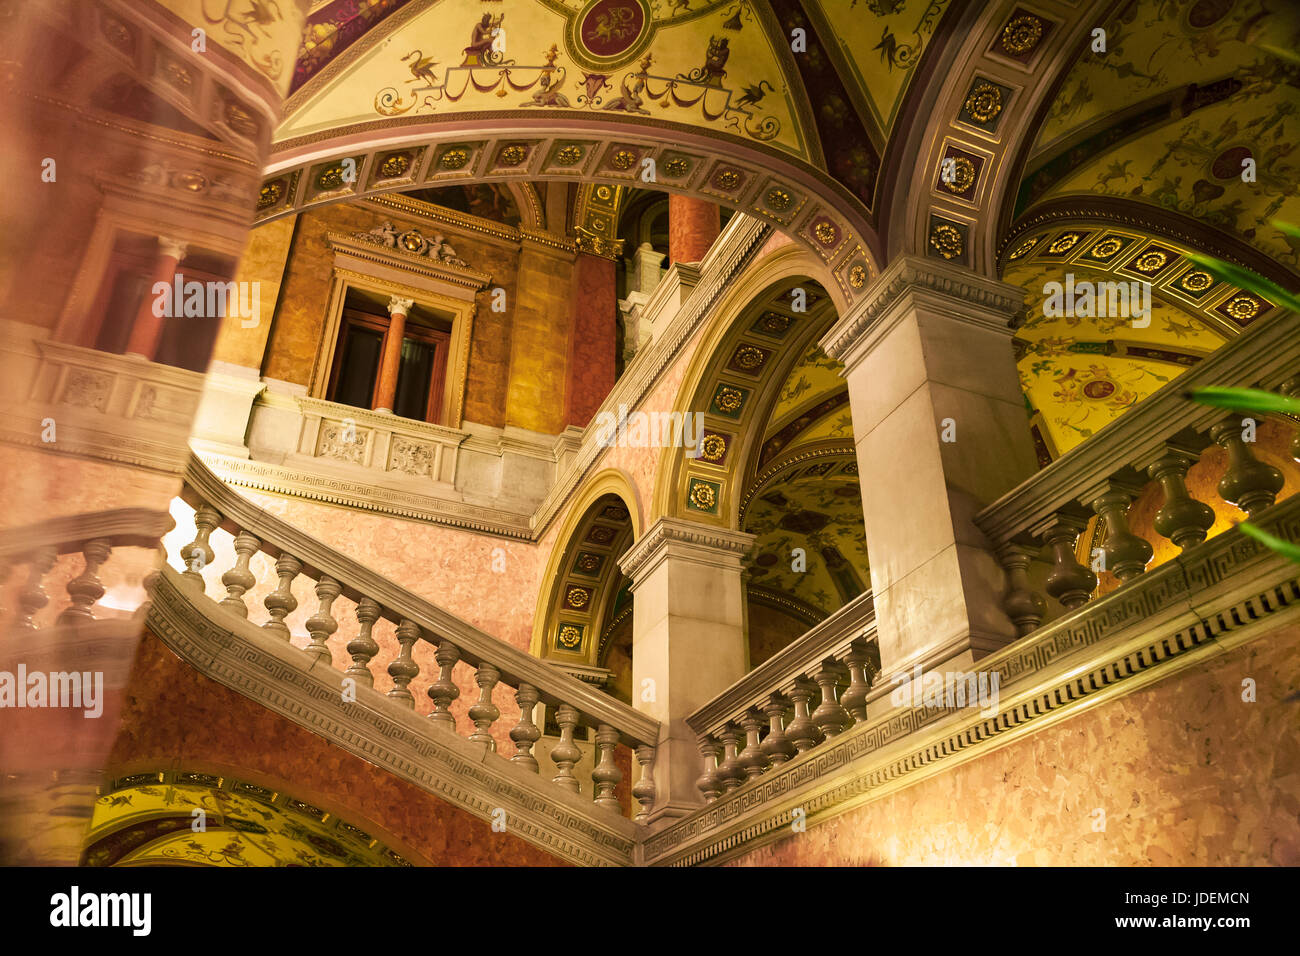 The Hungarian State Opera House, Andrássy útca, Terézváros, Budapest, Hungary: marble staircase - Stock Image